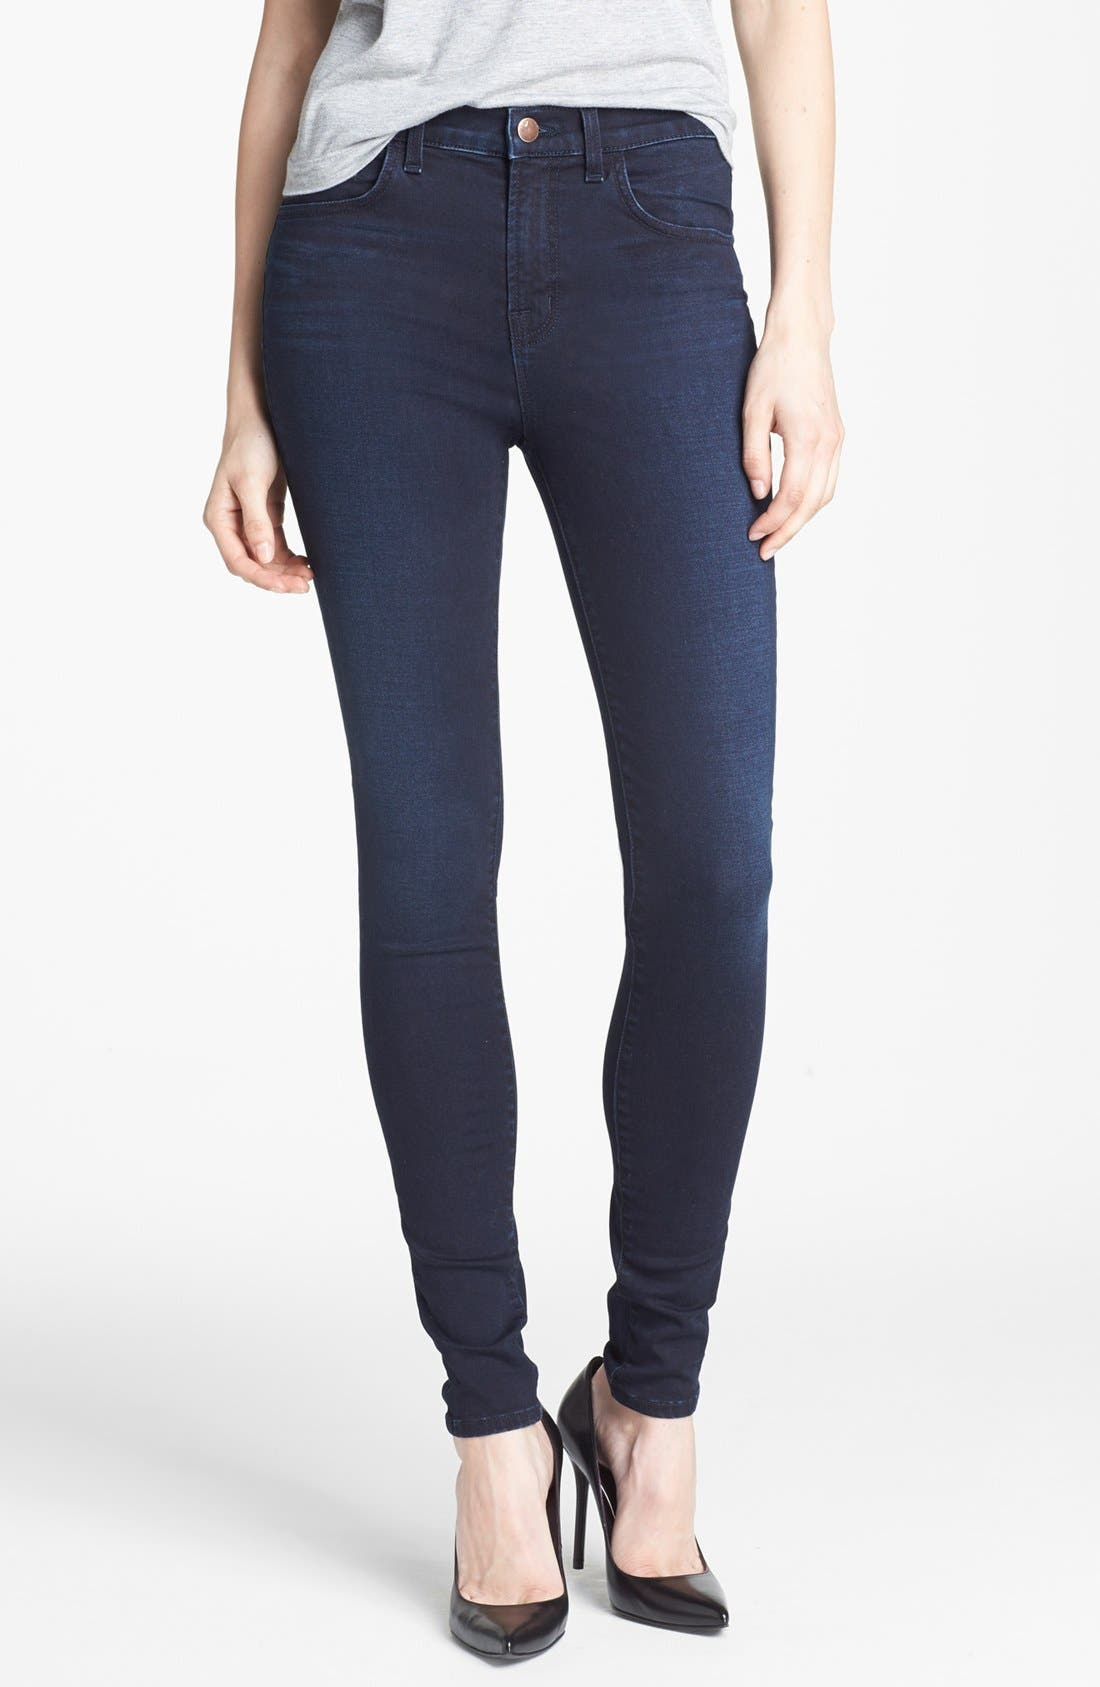 Main Image - J Brand '2311 Maria' High Rise Skinny Jeans (Atmosphere)